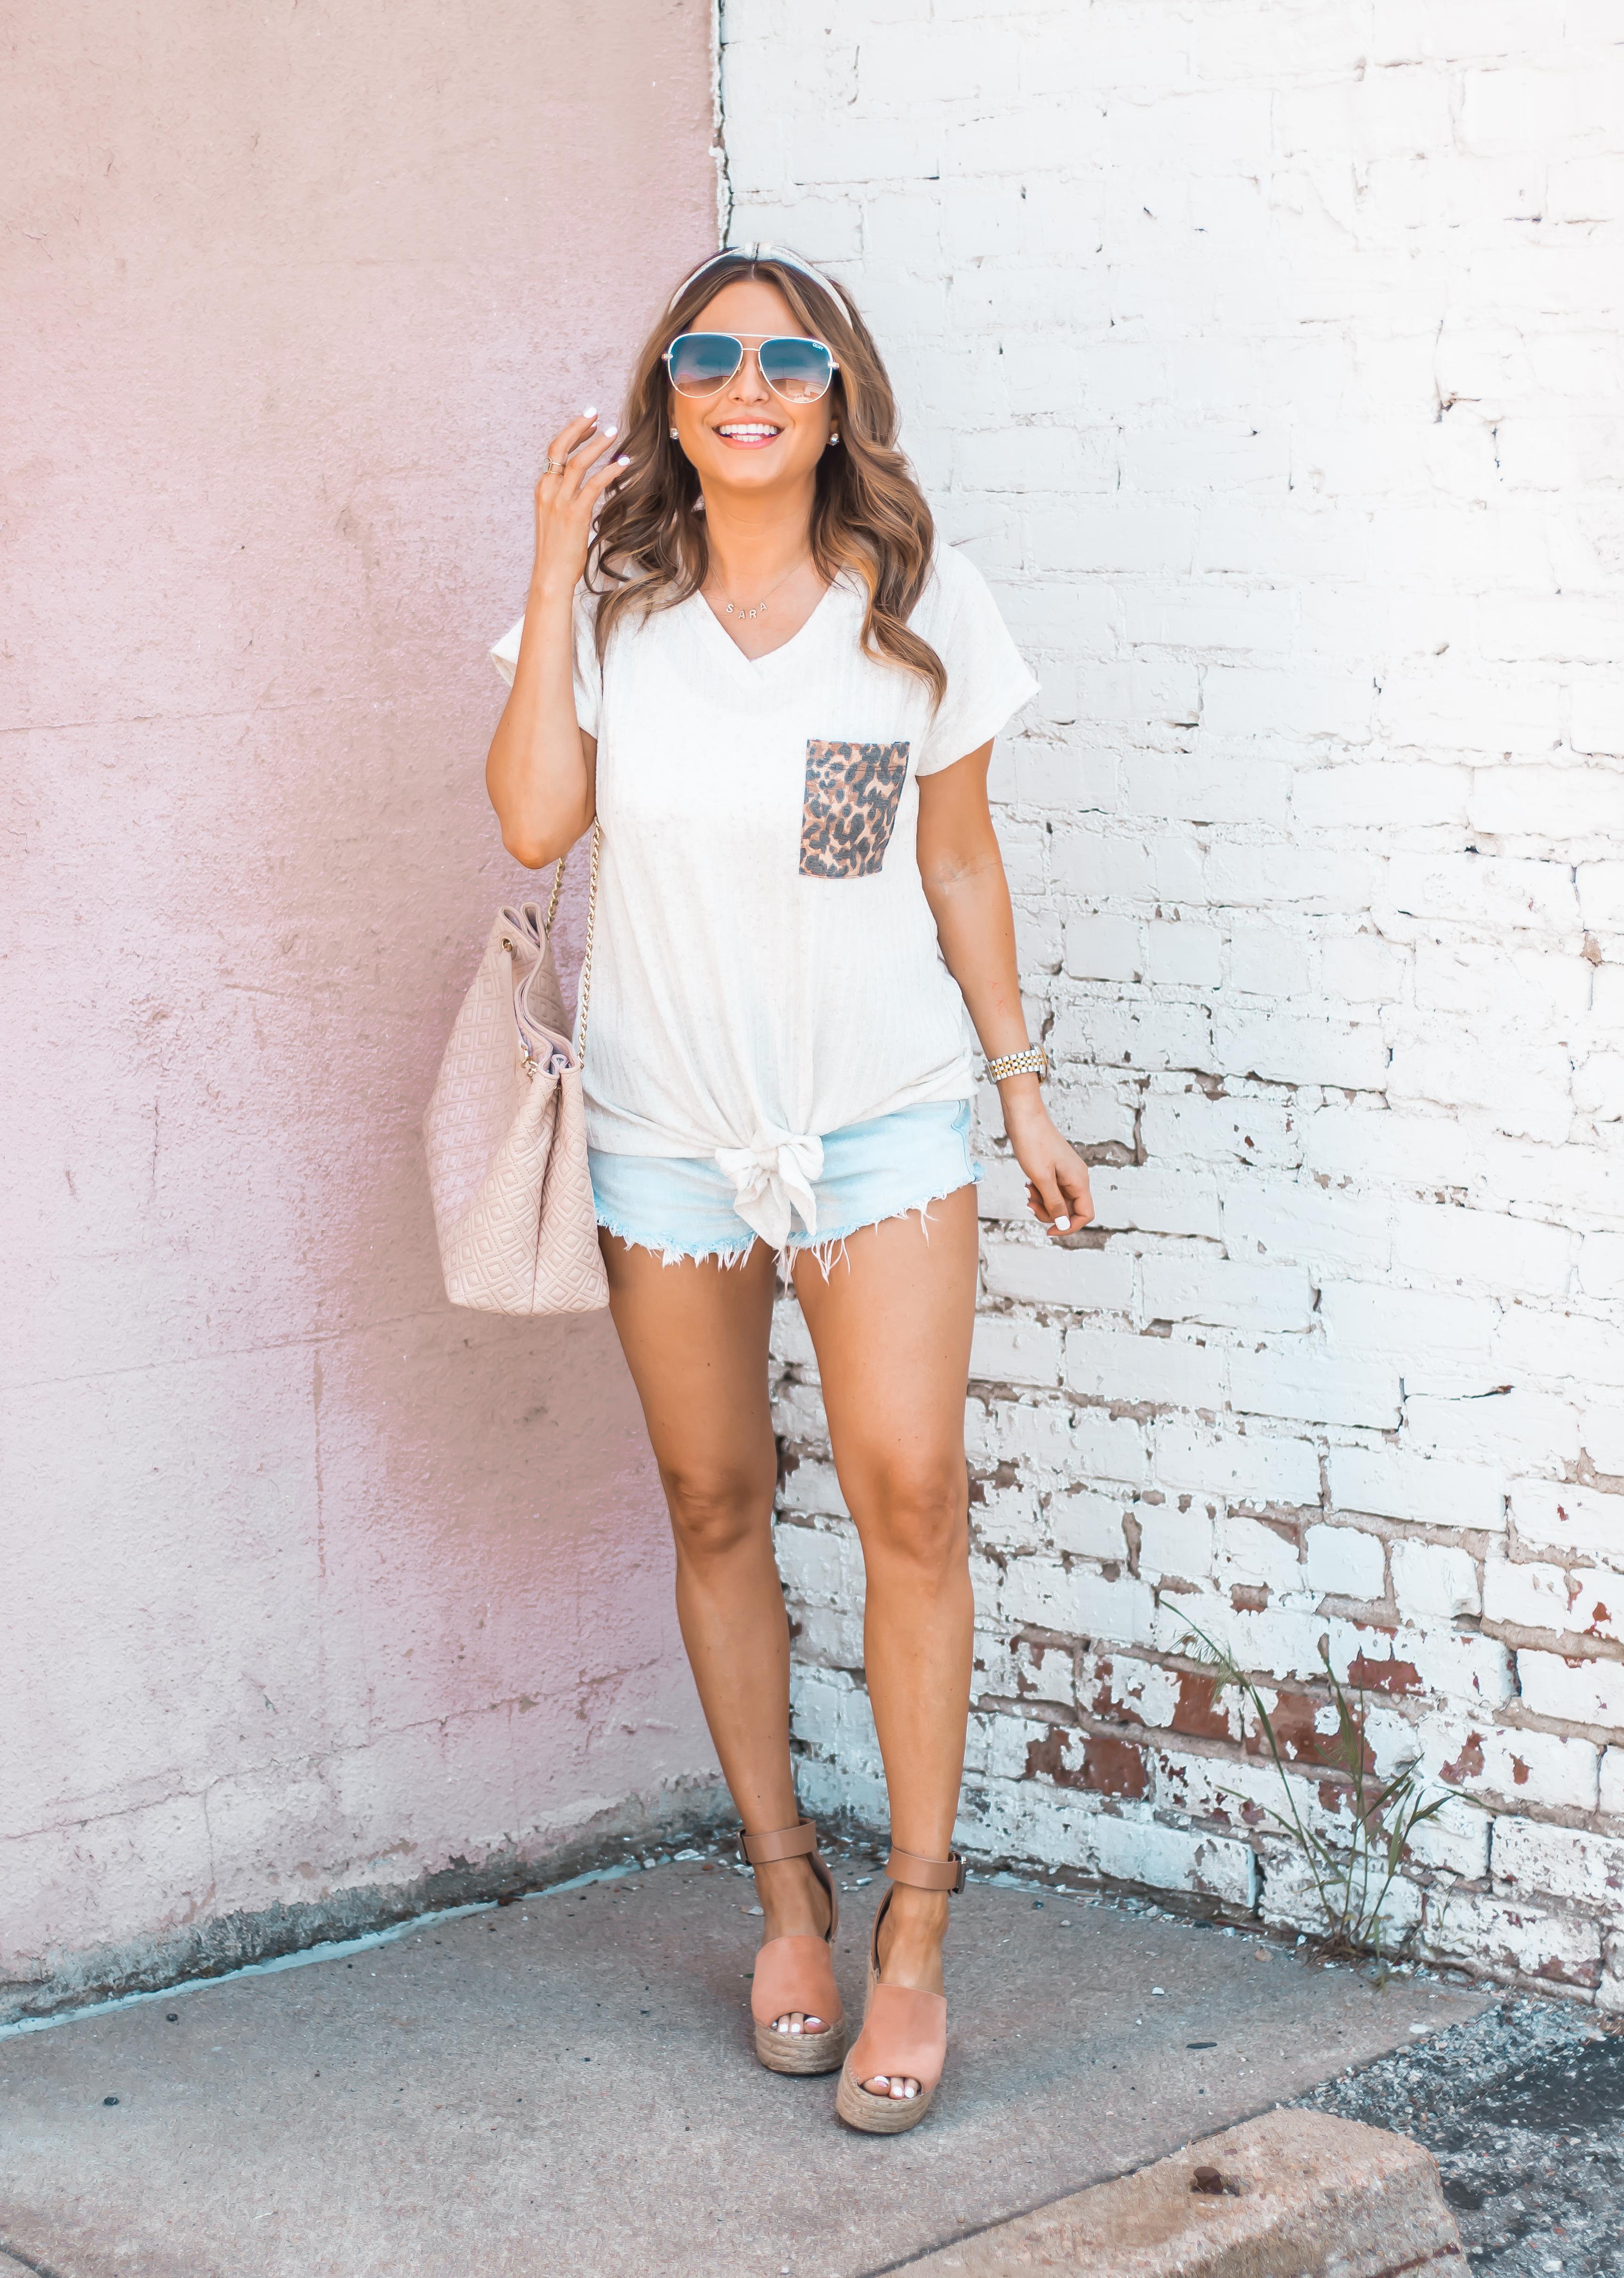 Women's Fashion-Summer Fashion-Summer Outfit Inspiration-Sabby Style-Omaha Blogger-Leopard Pocket Top-The Style Bar Boutique-Cutoff Shorts-Espadrille Wedges-Marc Fisher Wedges-Tory Burch Fleming-Quay Sunglasses-Headband Trend-Omaha-Nebraska-Midwest Blogger-3